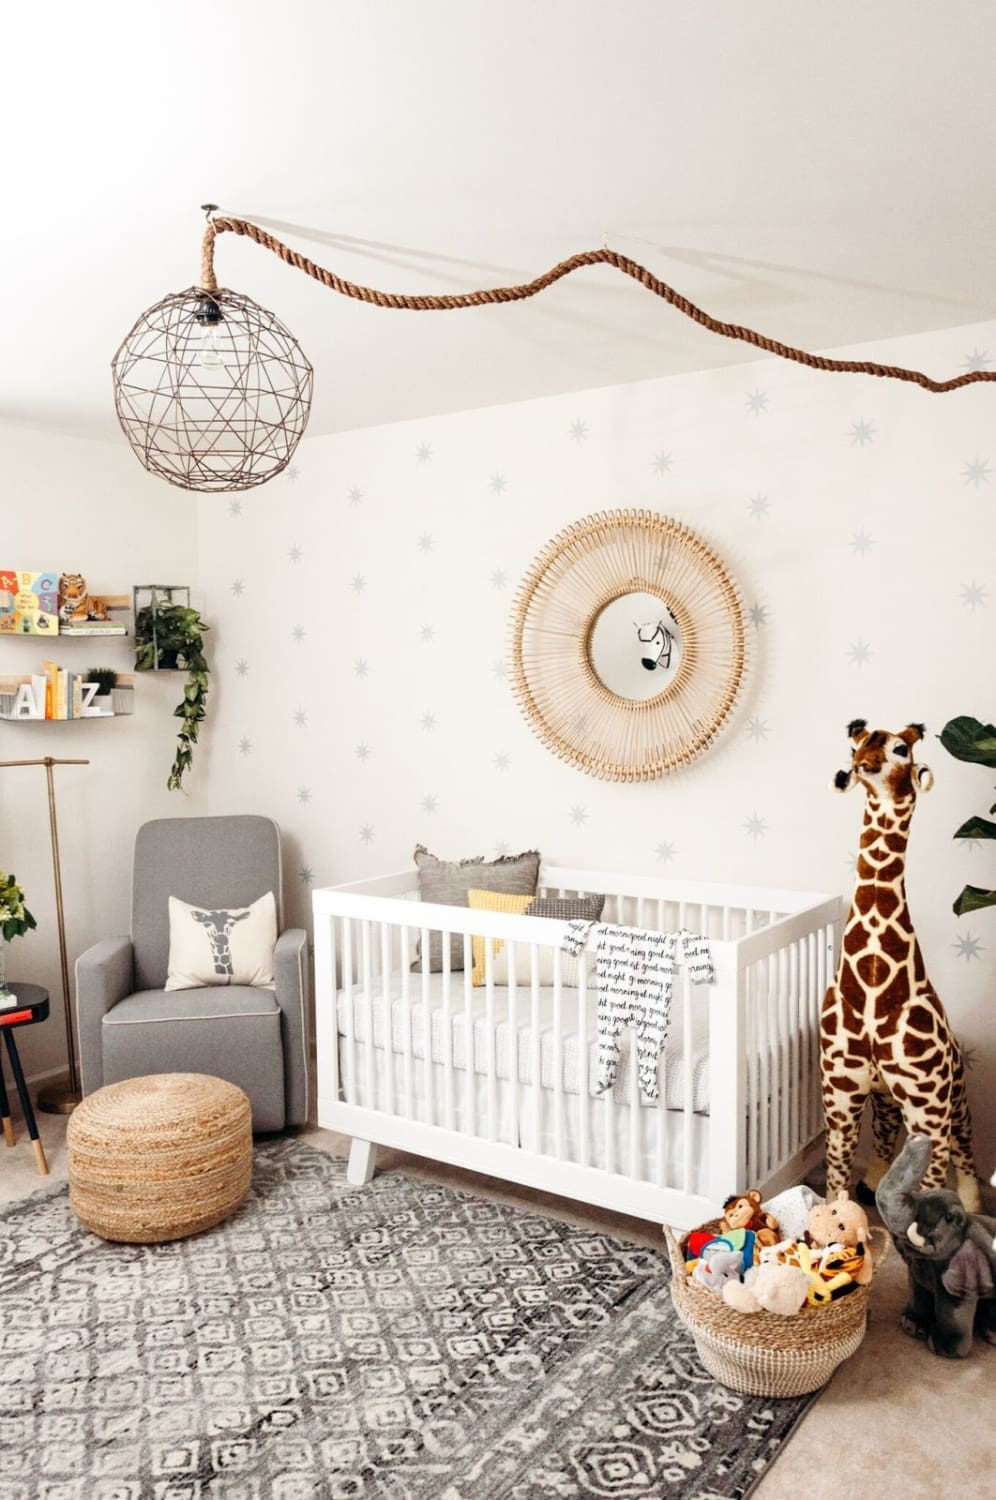 A Little Bit etc | Cribspiration: A Boho Chic Safari Nursery | Baby Aspen